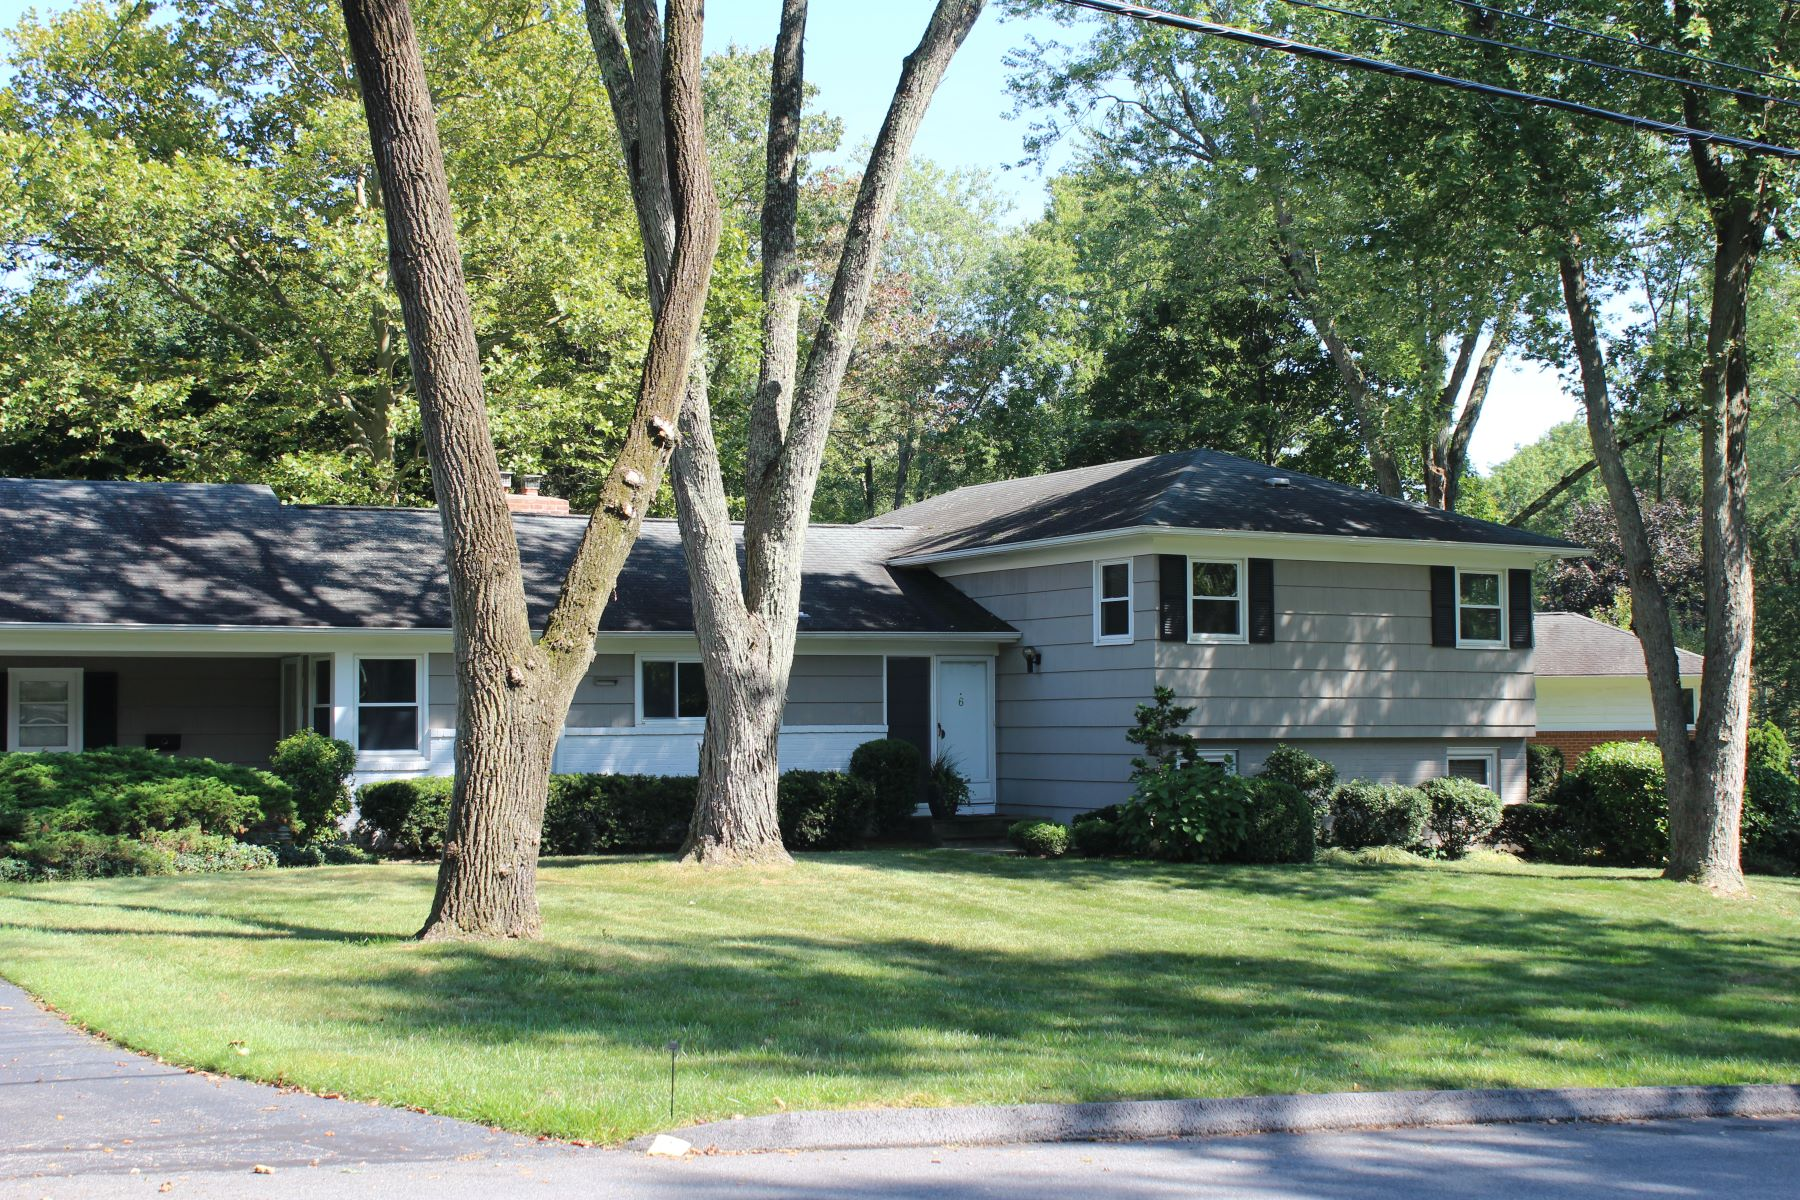 Single Family Homes for Sale at 6 Dorchester Drive Rye Brook, New York 10573 United States